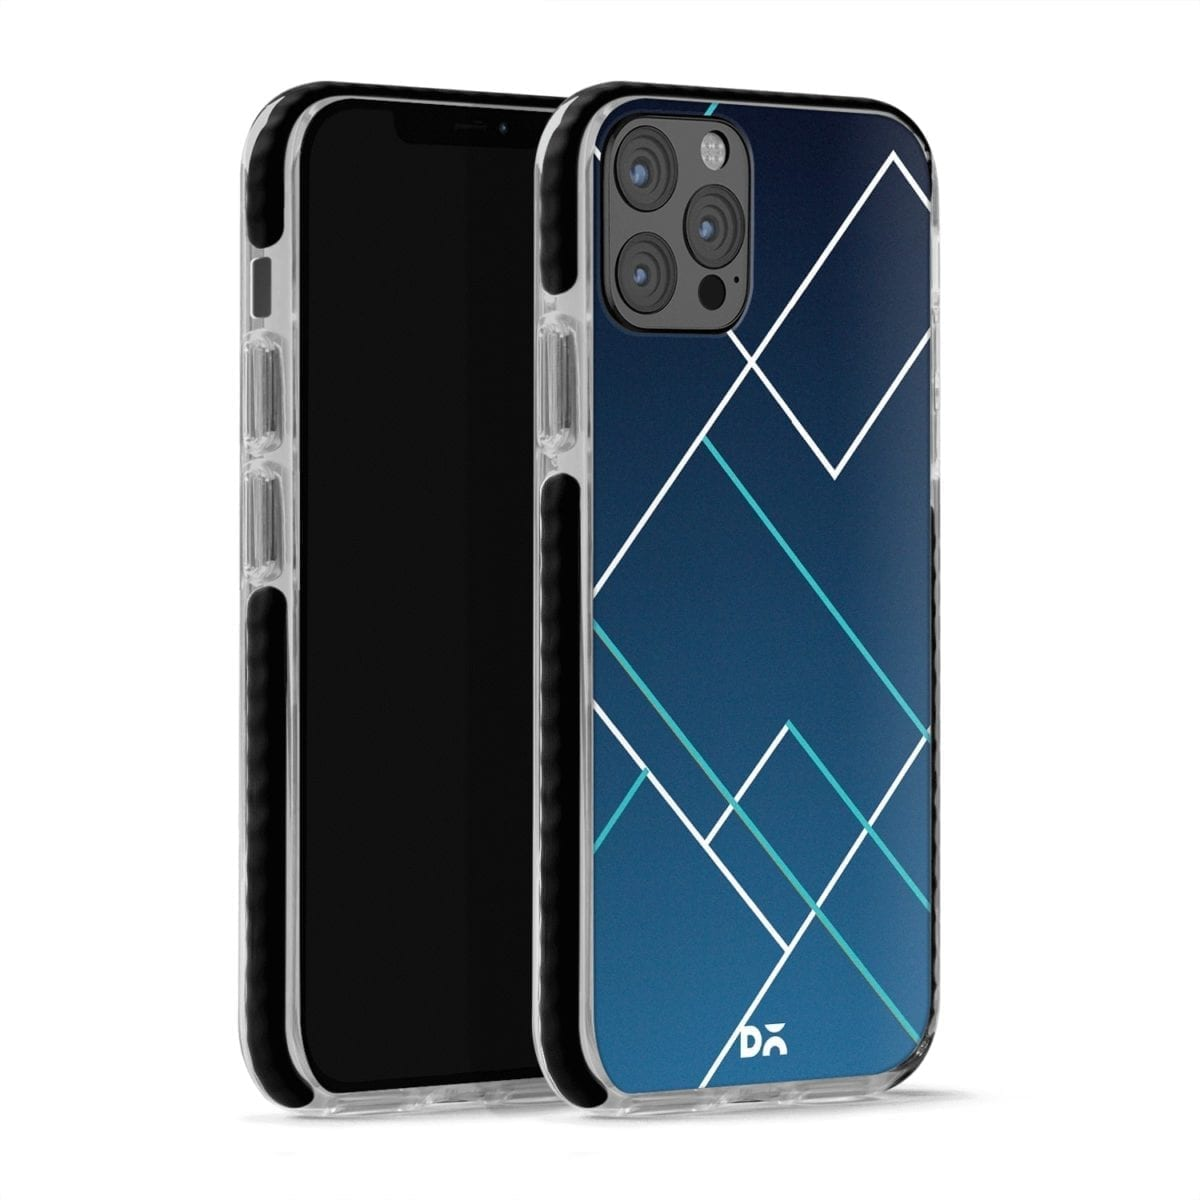 Nebula Tech Lines Checks Stride Case Cover for Apple iPhone 12 Pro and Apple iPhone 12 Pro Max with great design and shock proof | Klippik | Online Shopping | Kuwait UAE Saudi